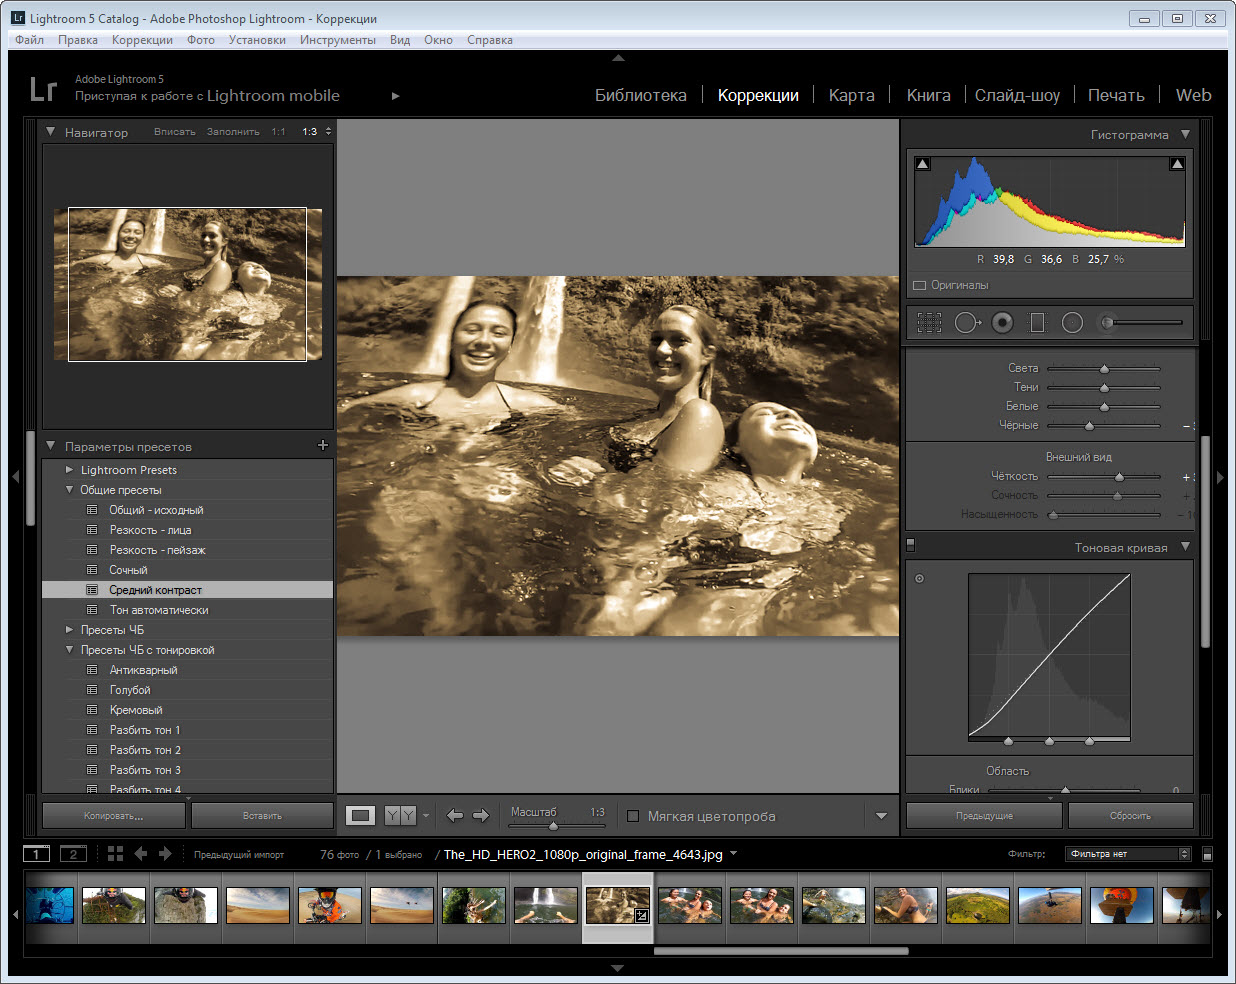 adobe photoshop lightroom на русском